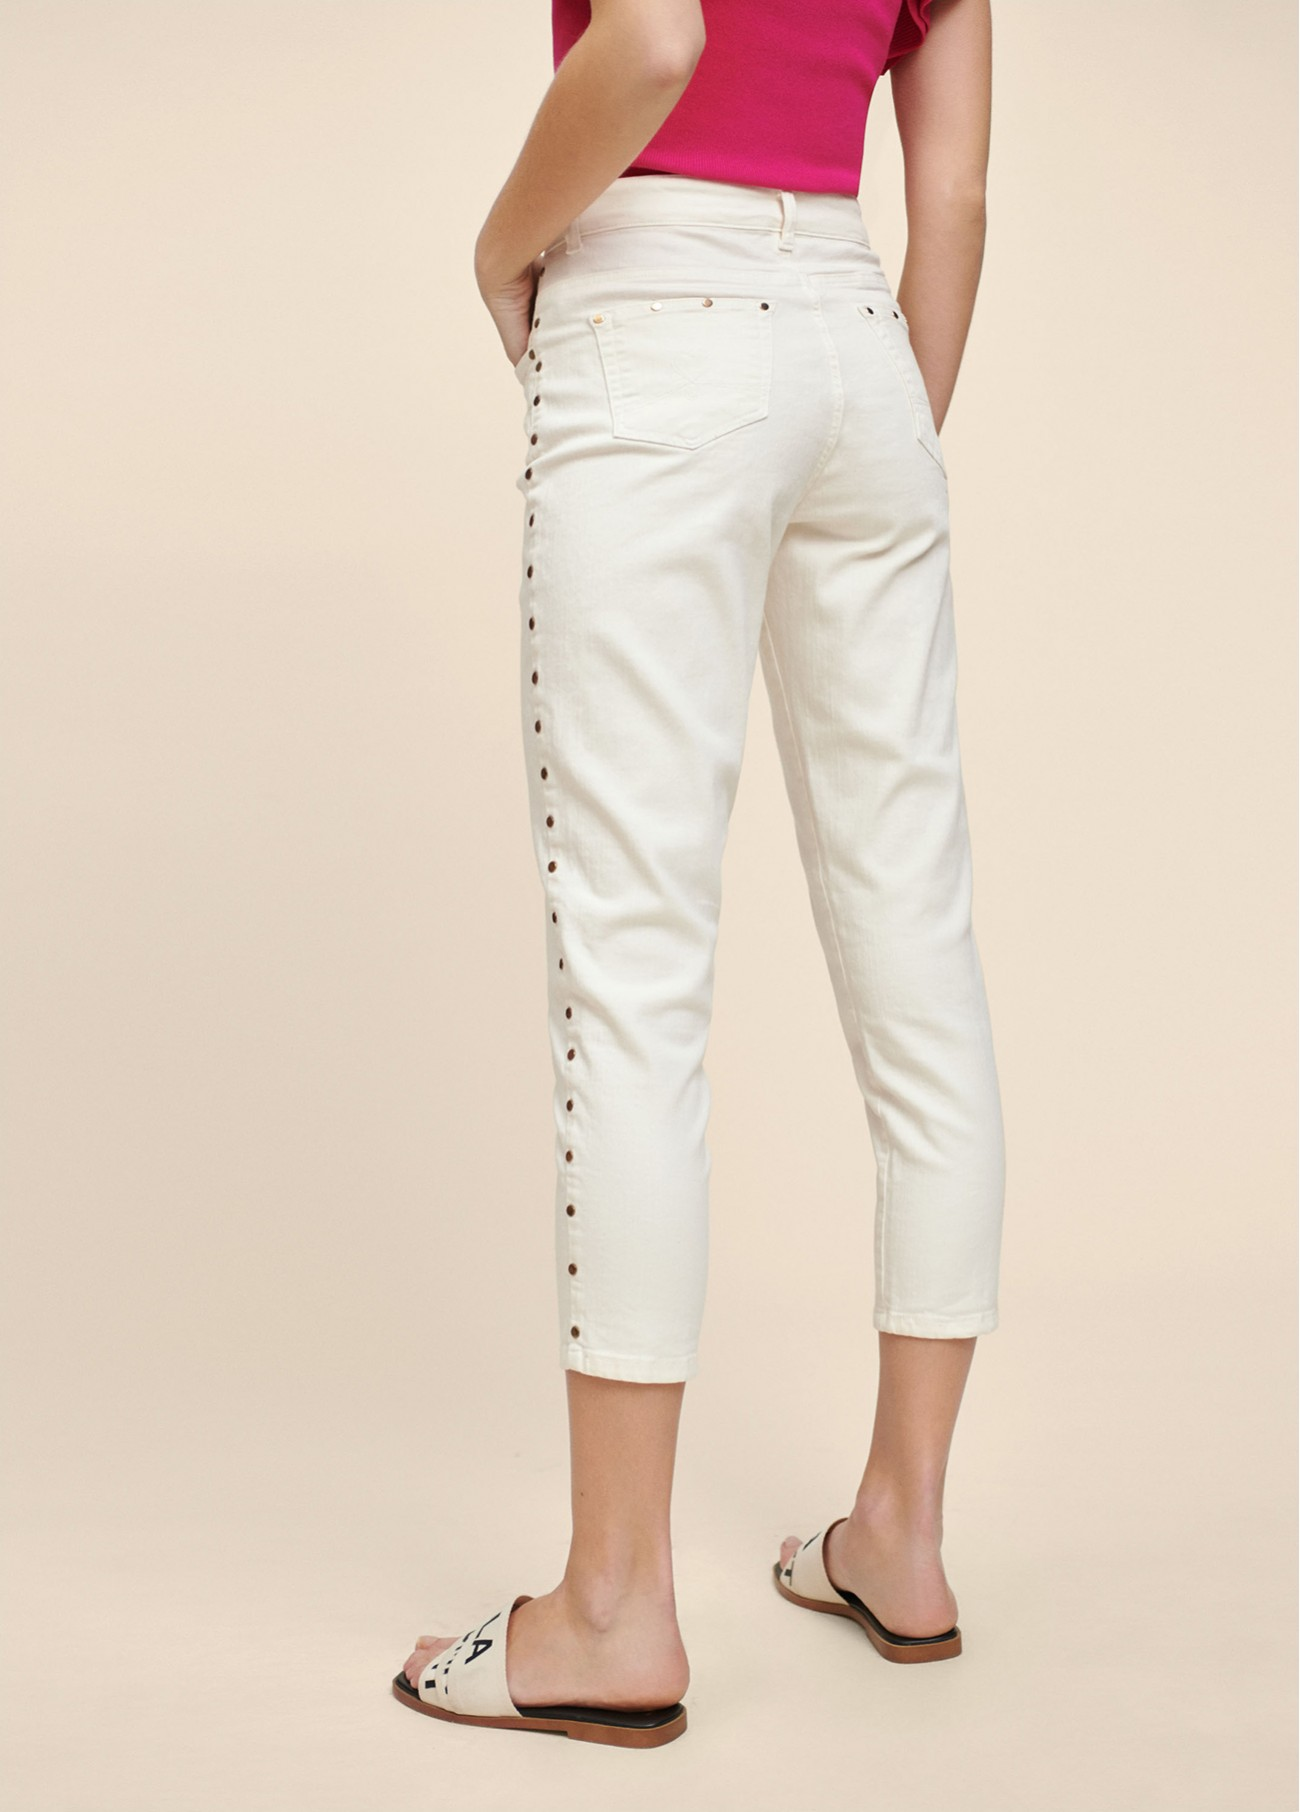 Pantalon blanco pitillo